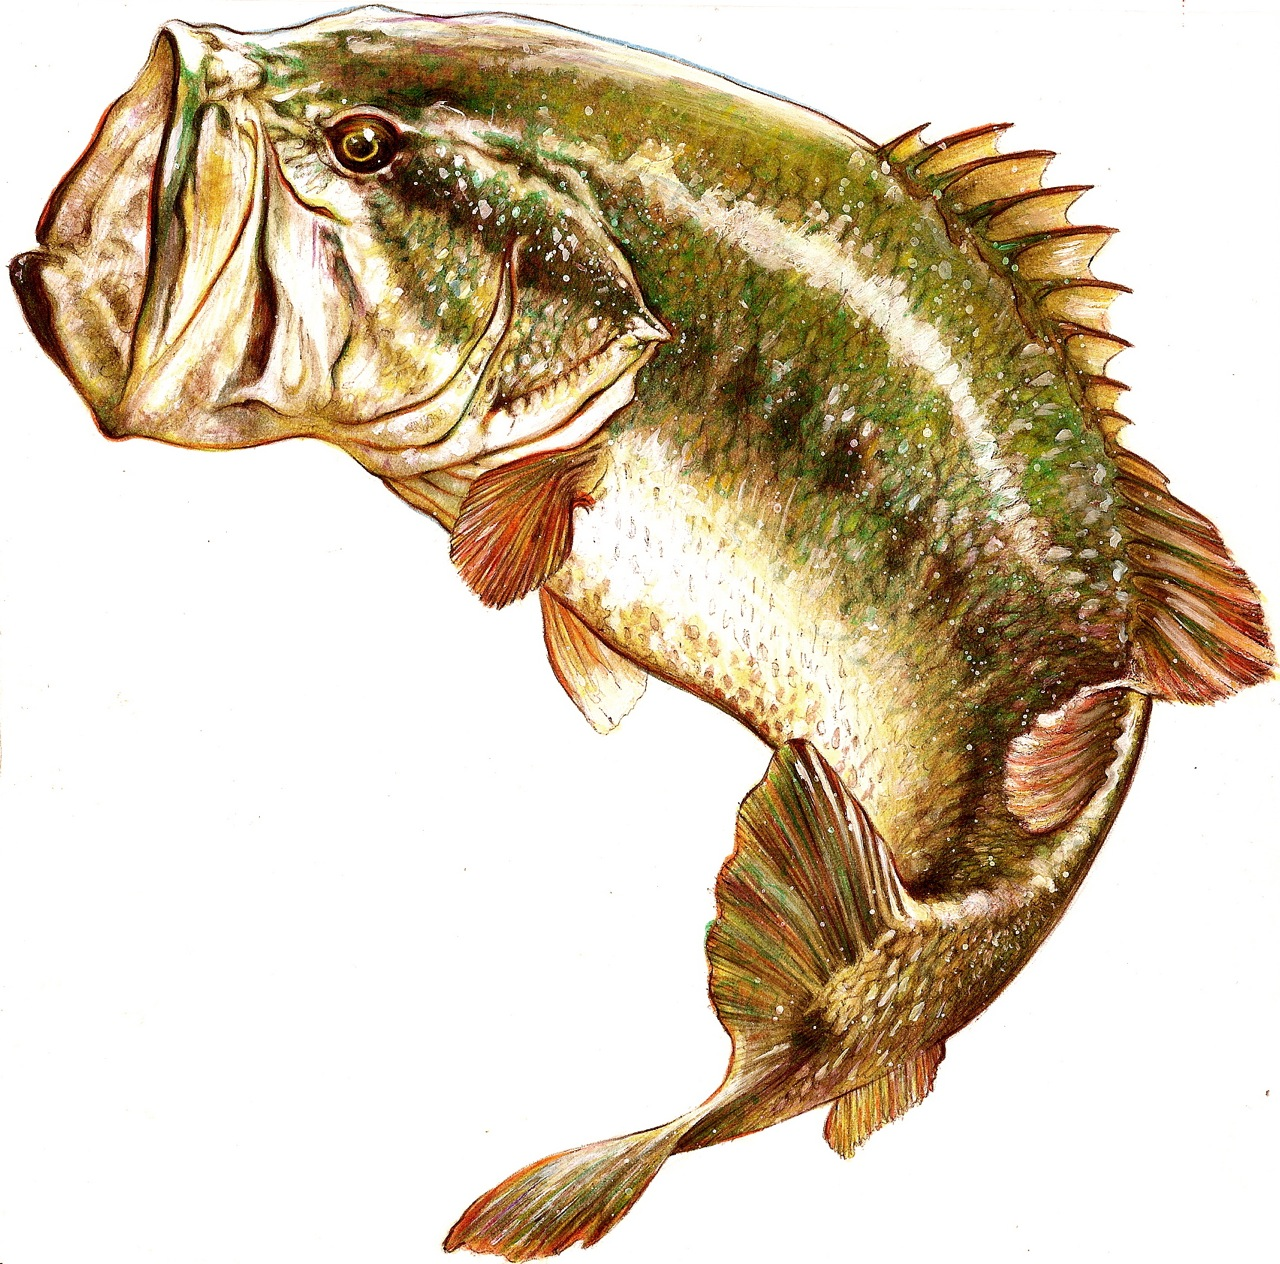 largemouth bass jumping drawing wallpapers background